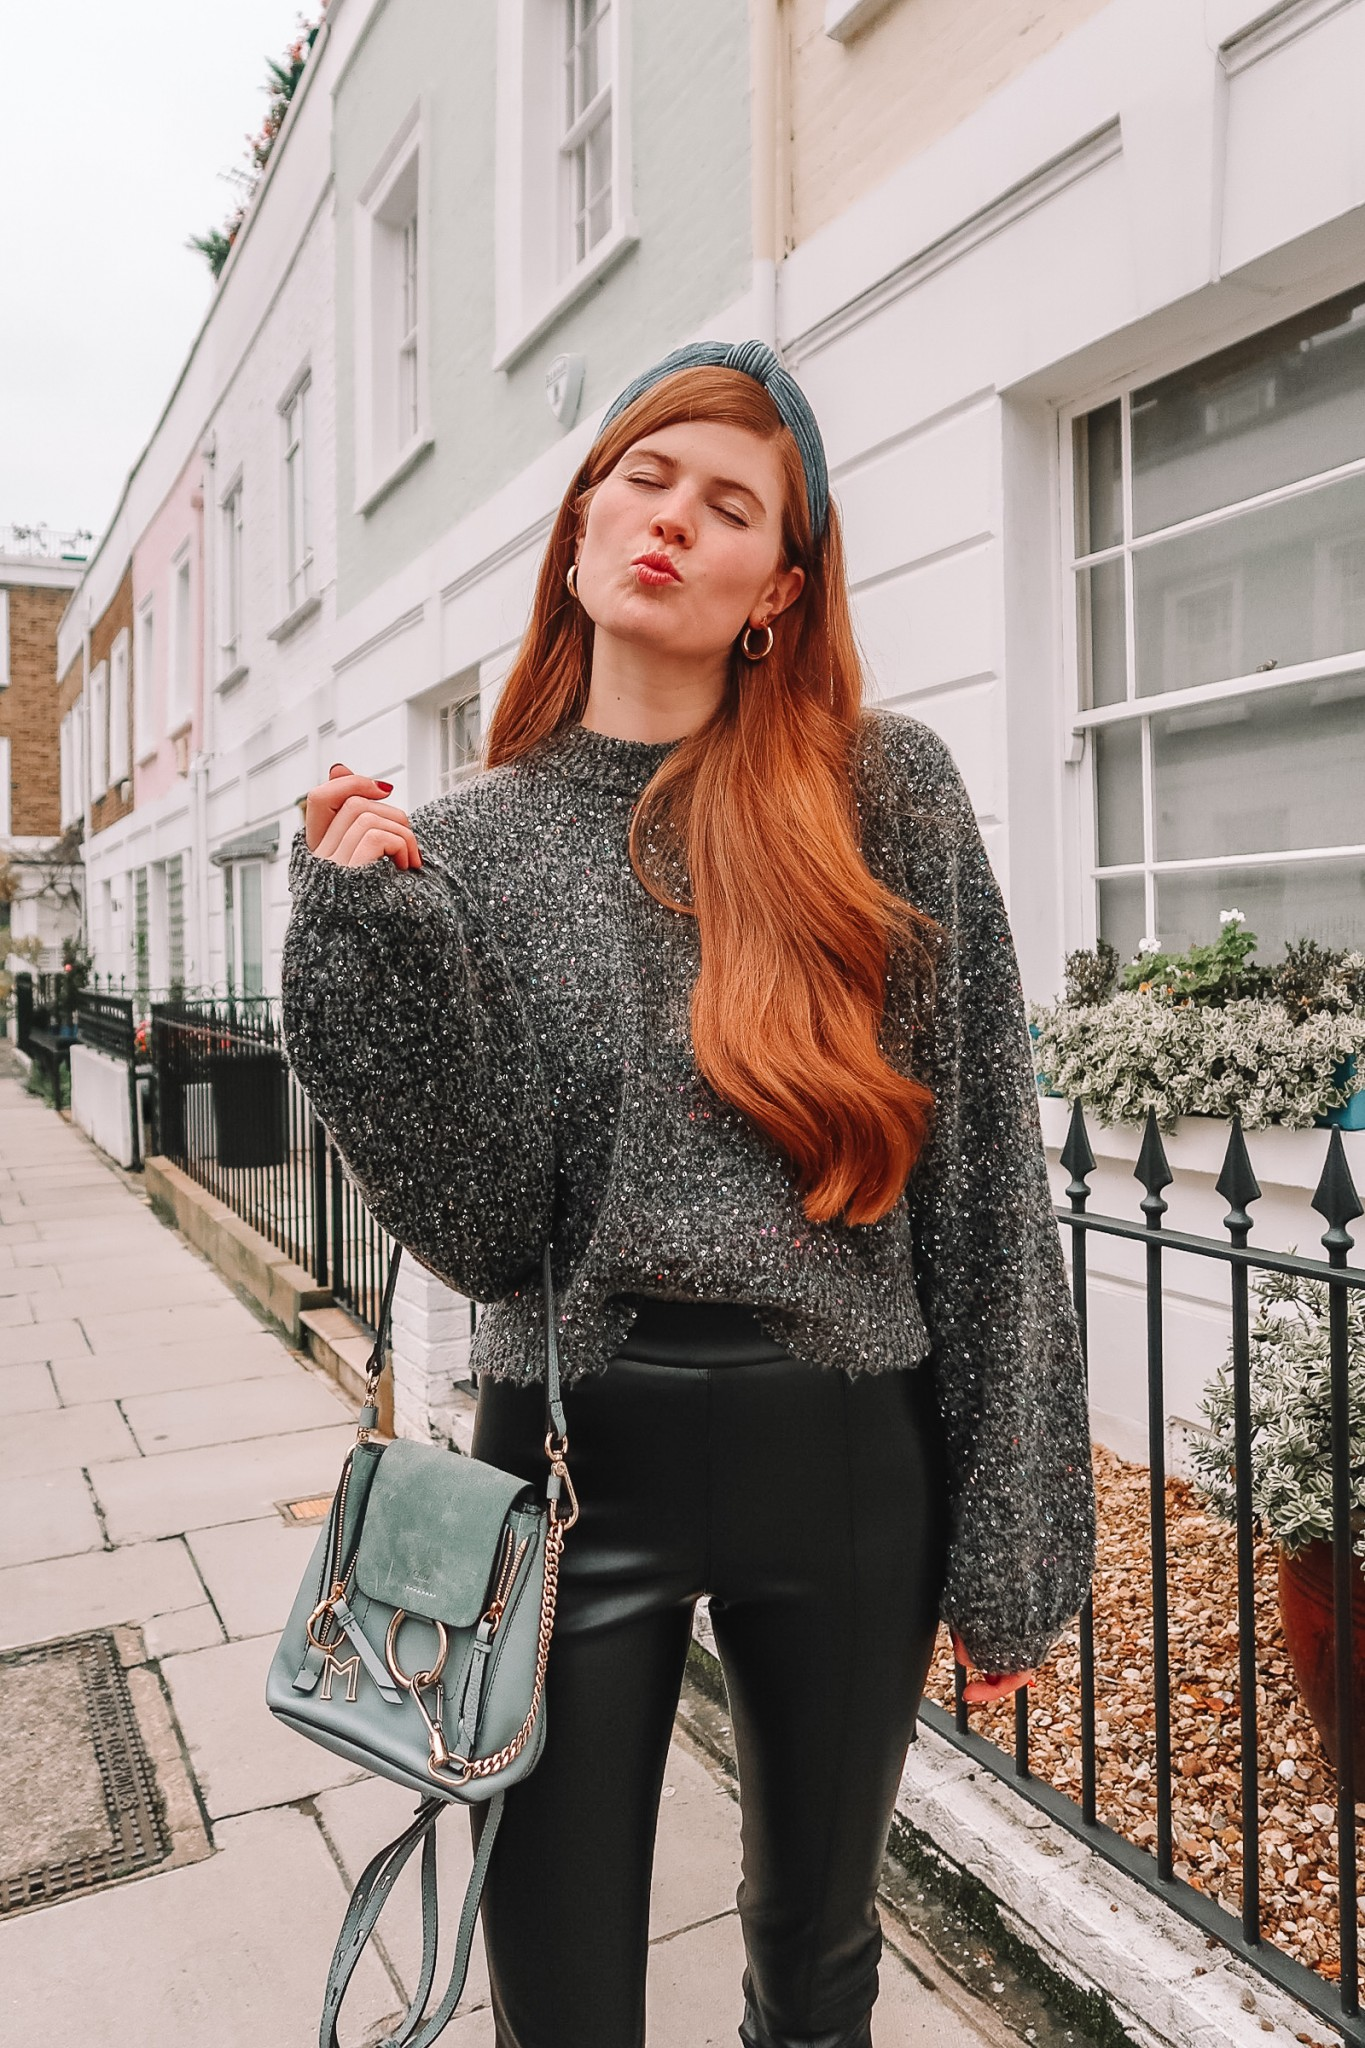 Chic and Cozy | Two NYE Outfit Ideas featured by top London fashion blogger Mollie Moore | 2 Stylish NYE Outfit Ideas featured by top London fashion blogger, Mollie Moore: image of a woman wearing a French Connection sequin sweater, Topshop faux leather skinny pants, & other stories suede booties, Chloe leather bag, Anthropologie head scarf and Halogen earrings